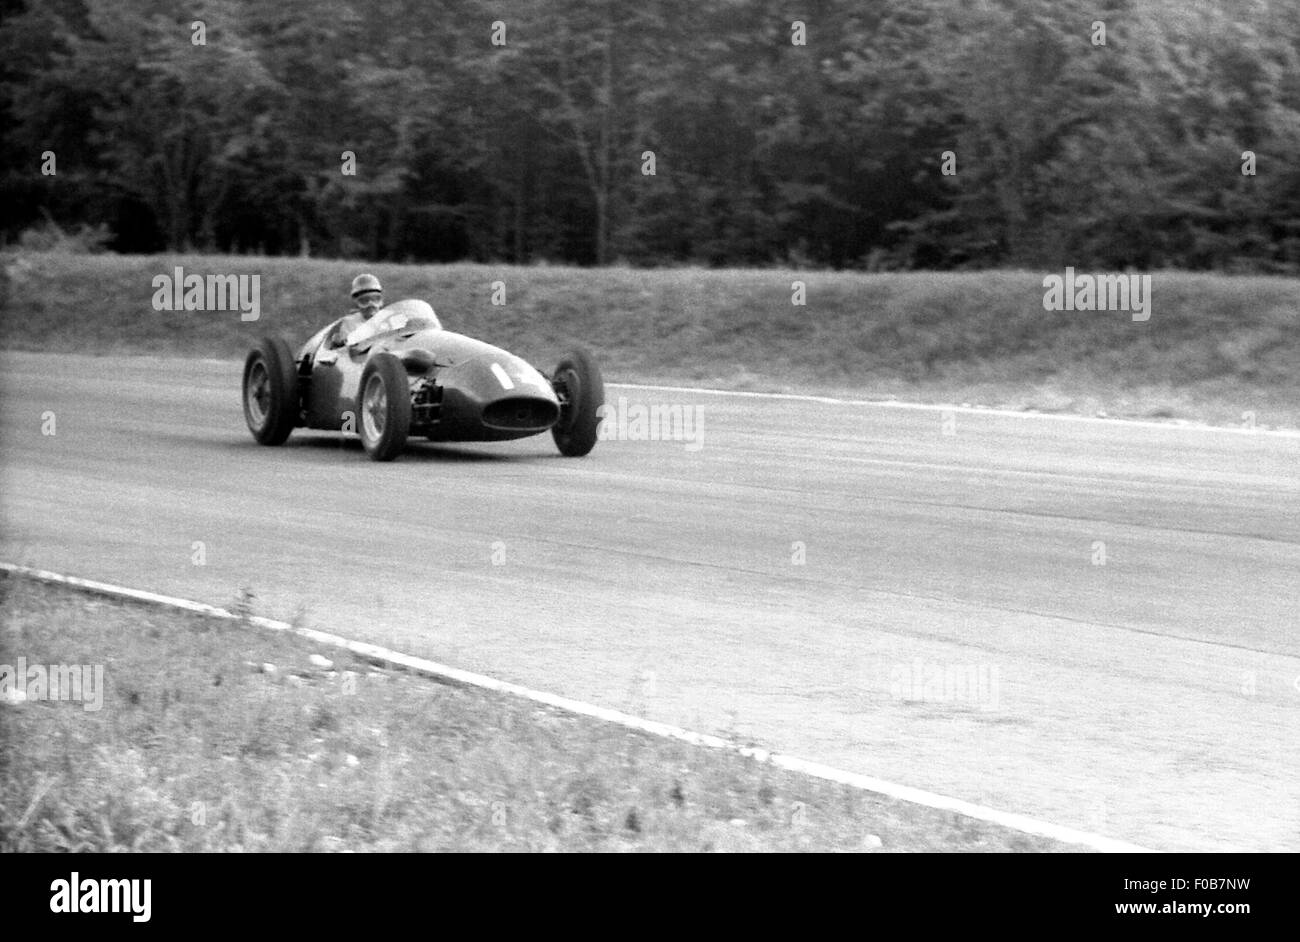 Italian GP at Monza 1956 - Stock Image